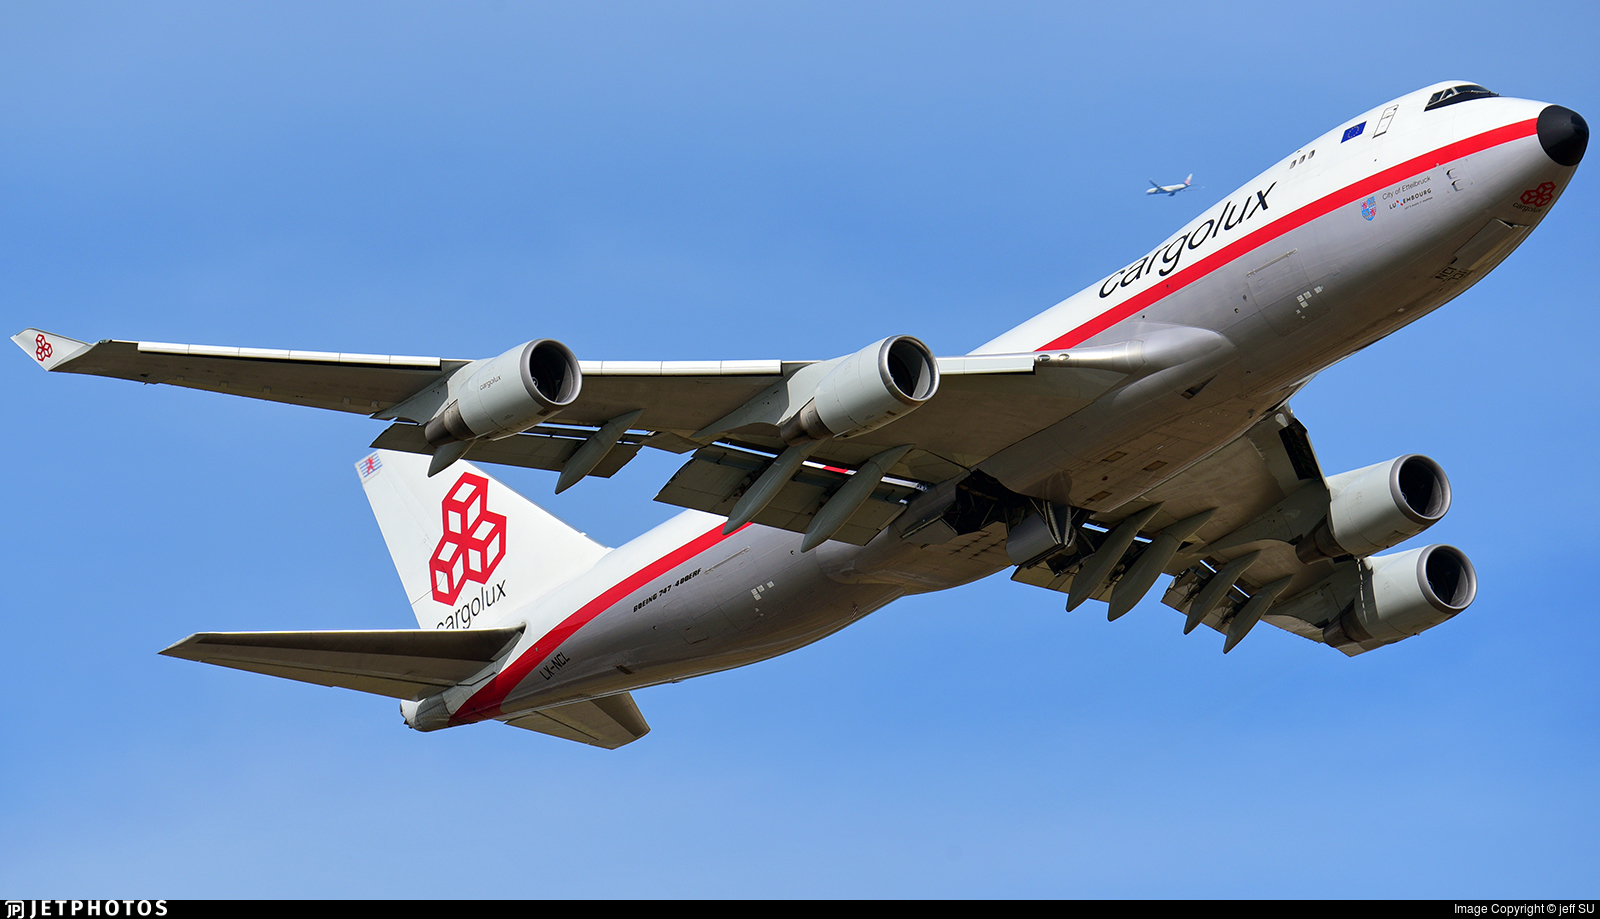 LX-NCL - Boeing 747-4EVERF - Cargolux Airlines International